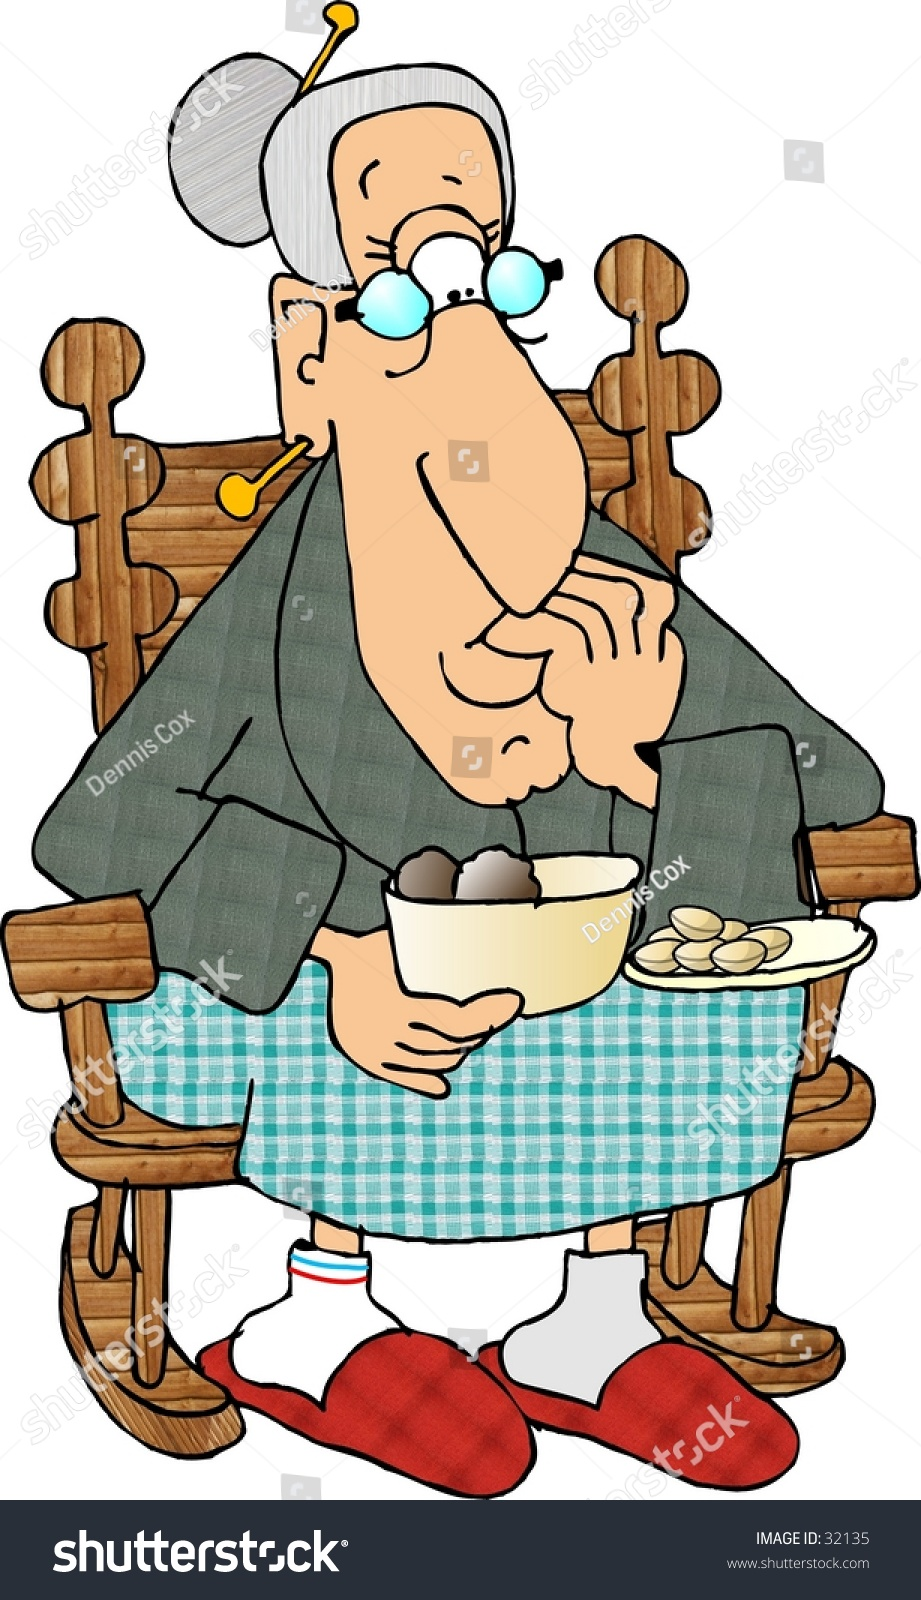 rocking chair clipart. Clipart Illustration Of An Old Woman Sitting In A Rocking Chair U